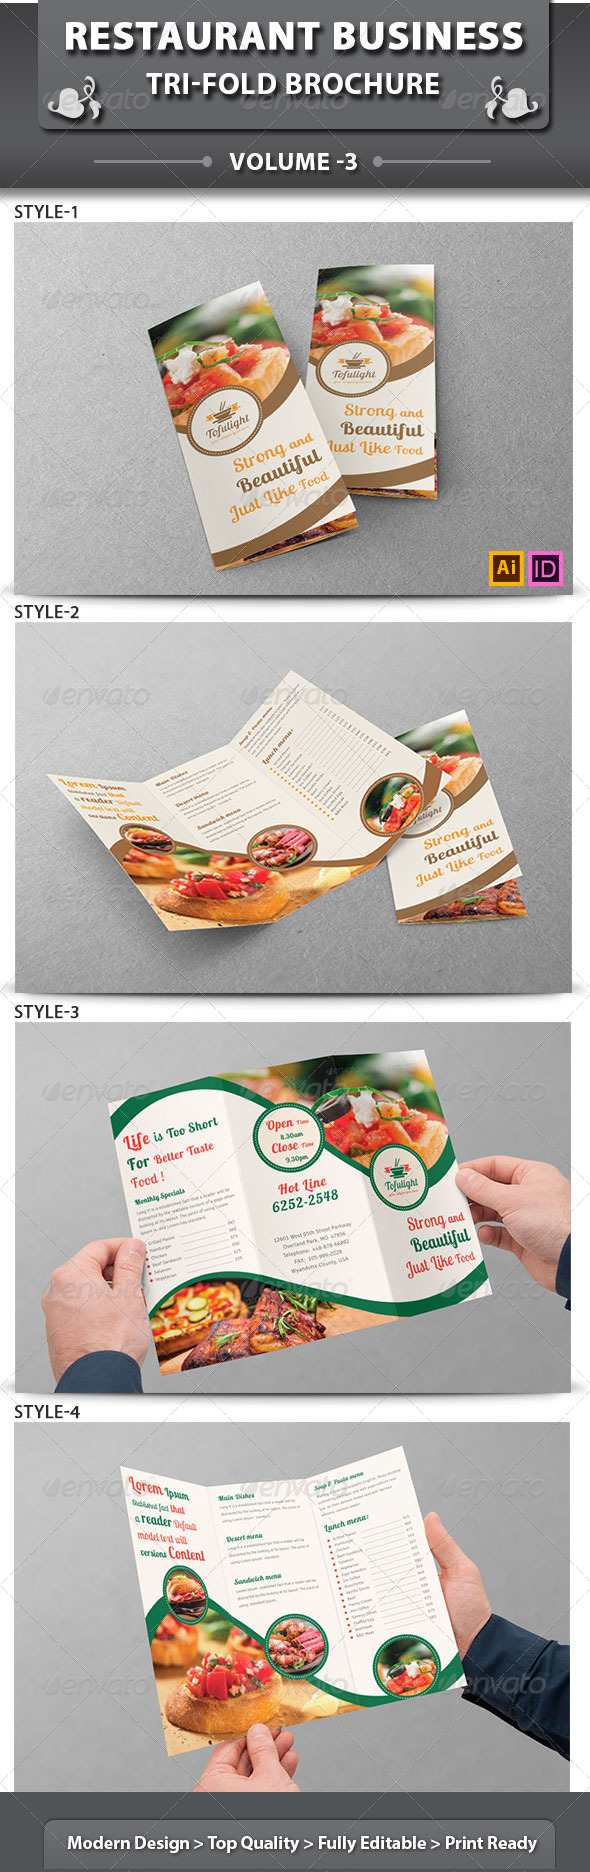 tri fold brochure template indesign cs6 - restaurant business tri fold brochure volume 3 by